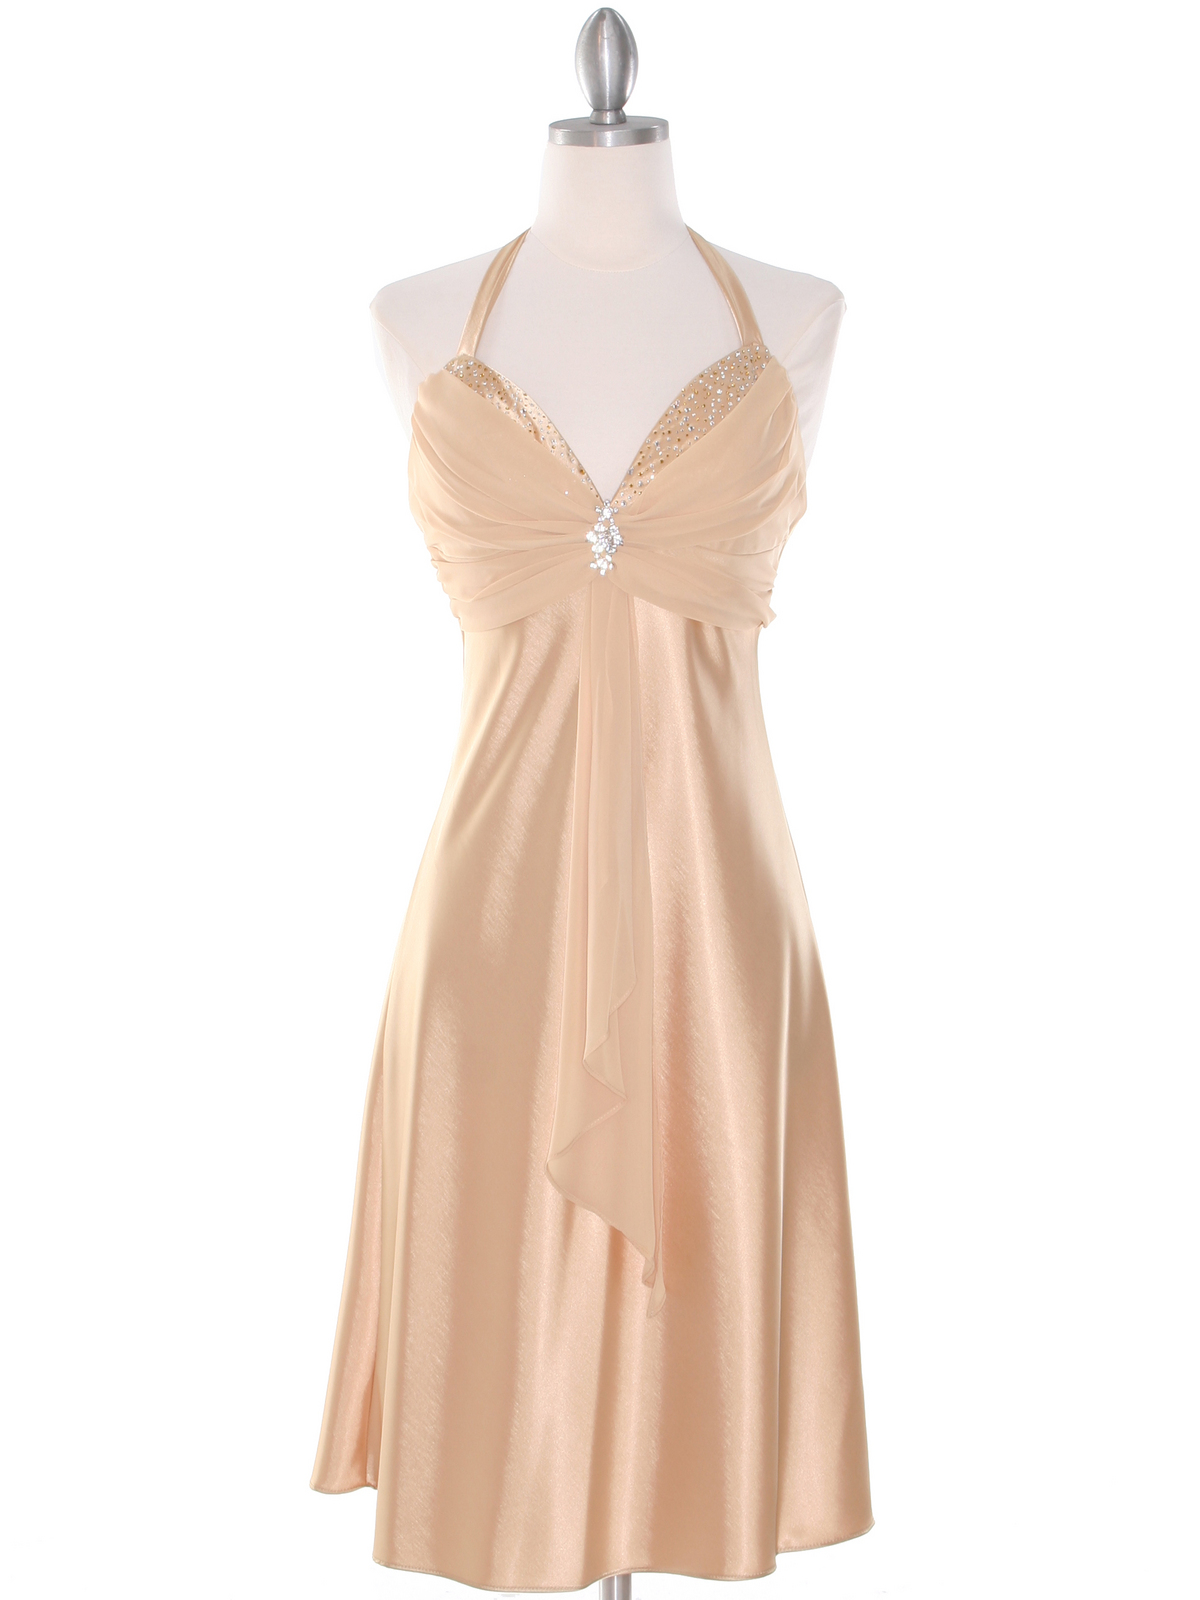 Gold Halter Cocktail Dress with Rhinestone Pin | Sung Boutique L.A.